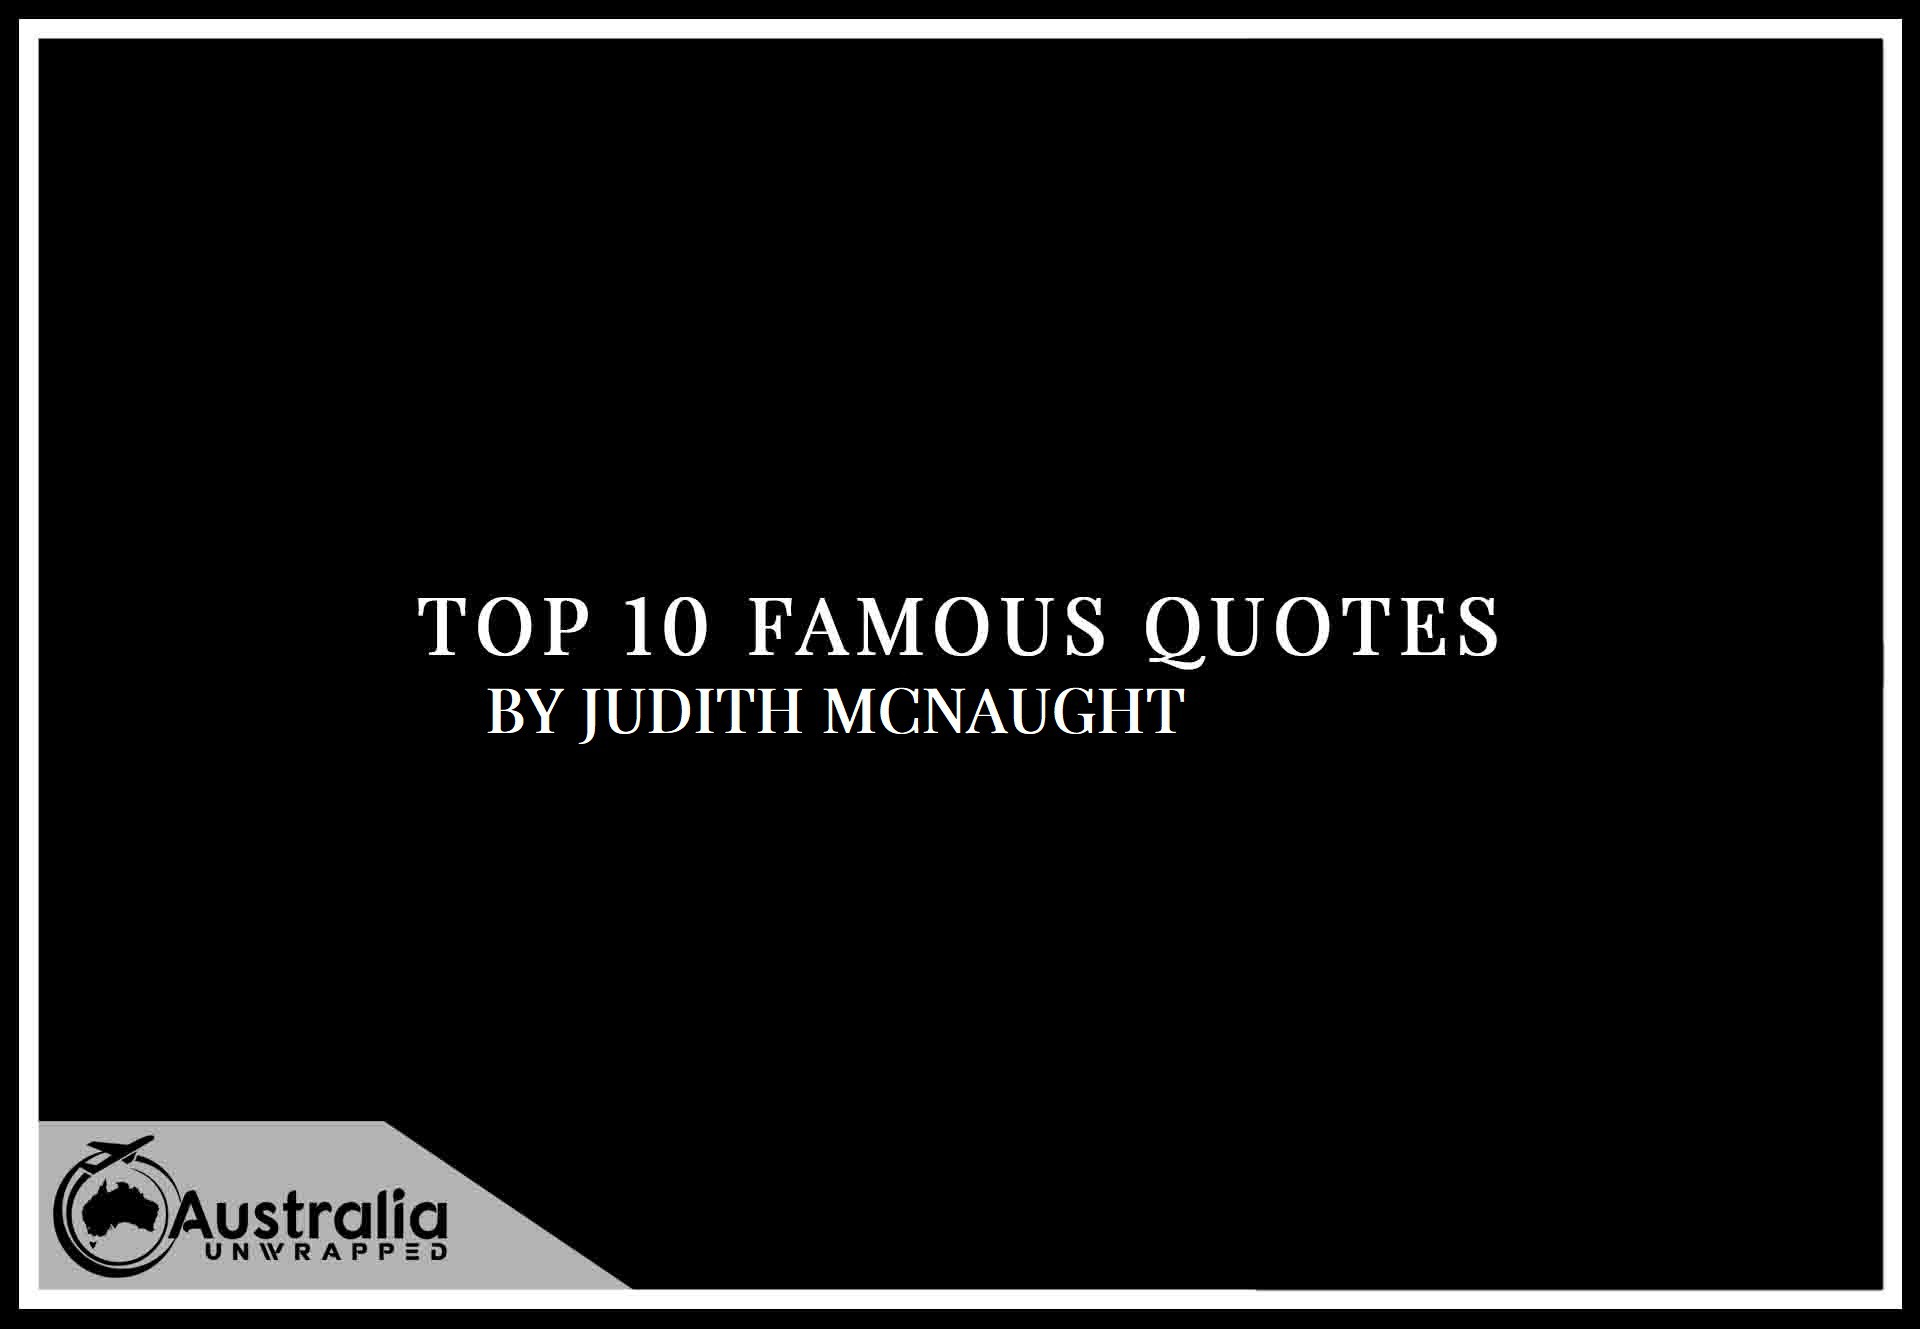 Top 10 Famous Quotes by Author Judith McNaught